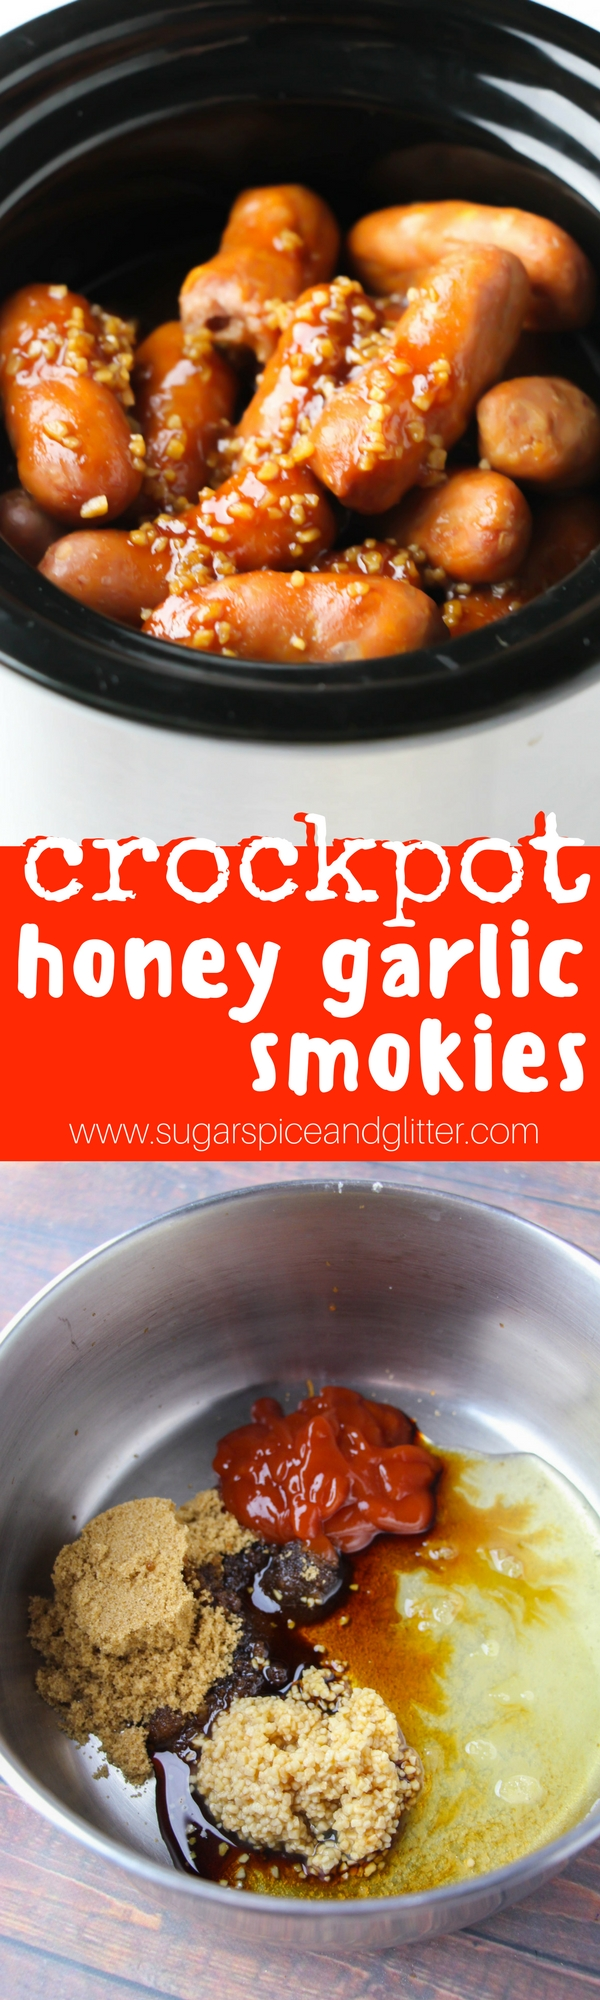 An easy crockpot sausage appetizer recipe, these Crockpot Honey Garlic Smokies are a sweet and smoky sausage recipe for tailgating or fall parties